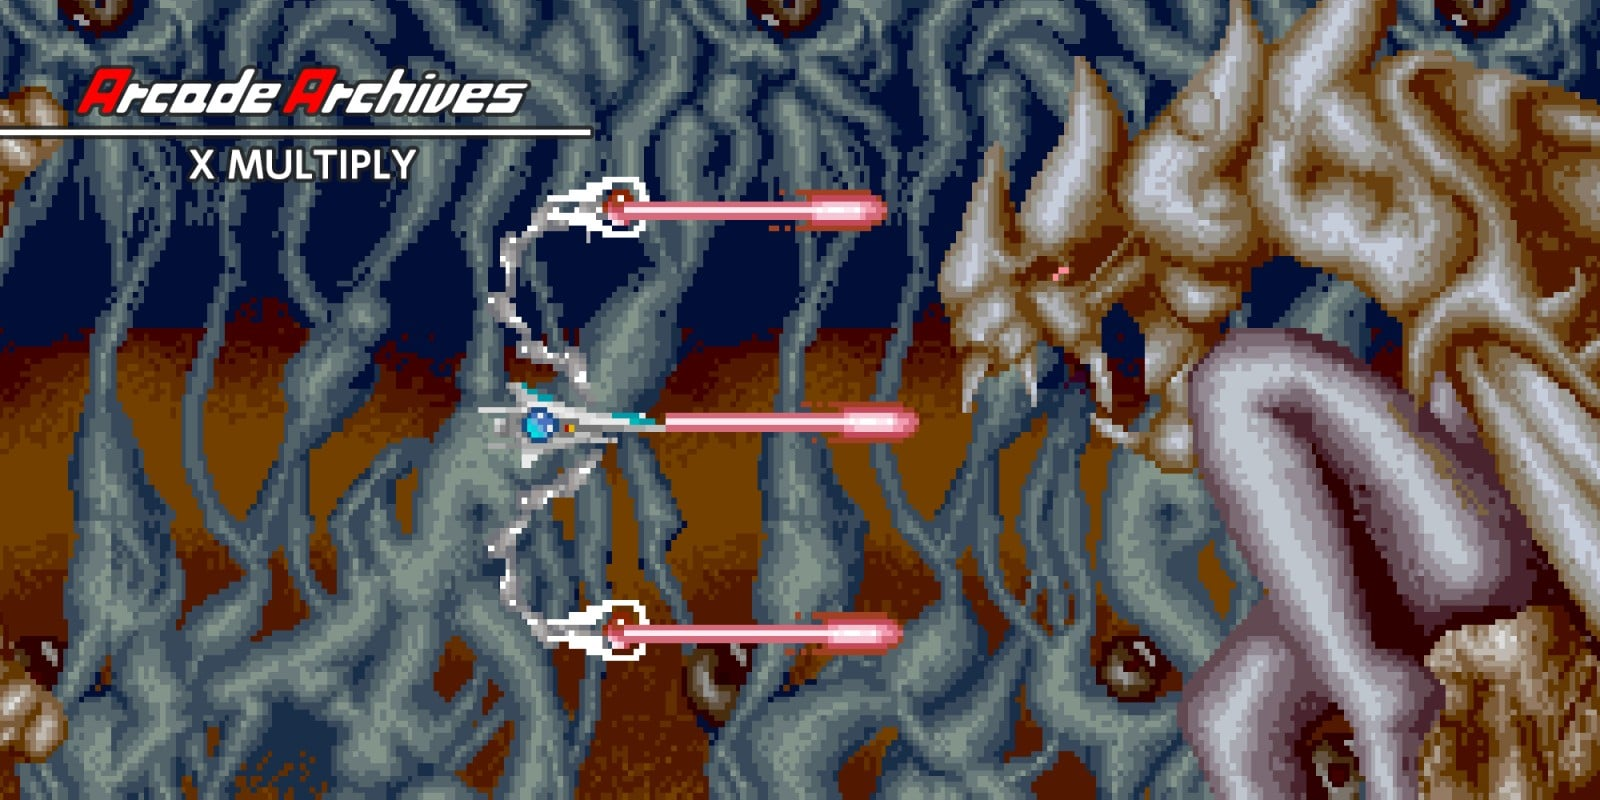 Arcade Archives X MULTIPLY